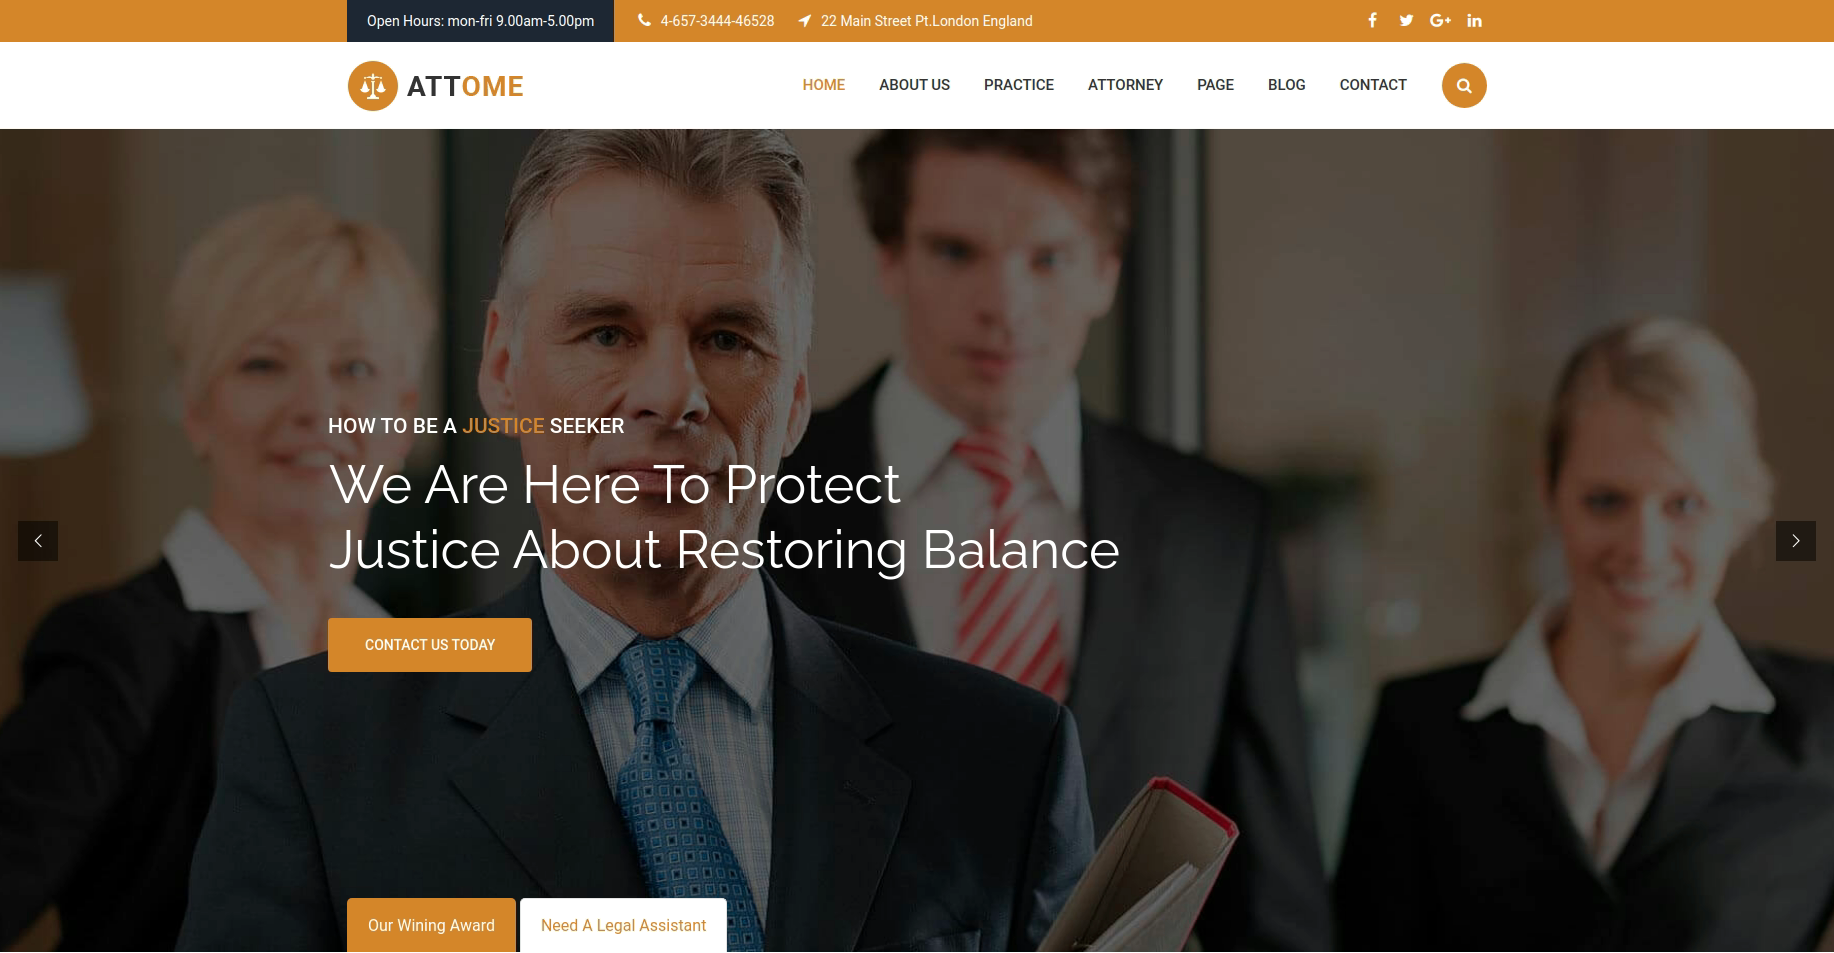 Attome law firm website layout